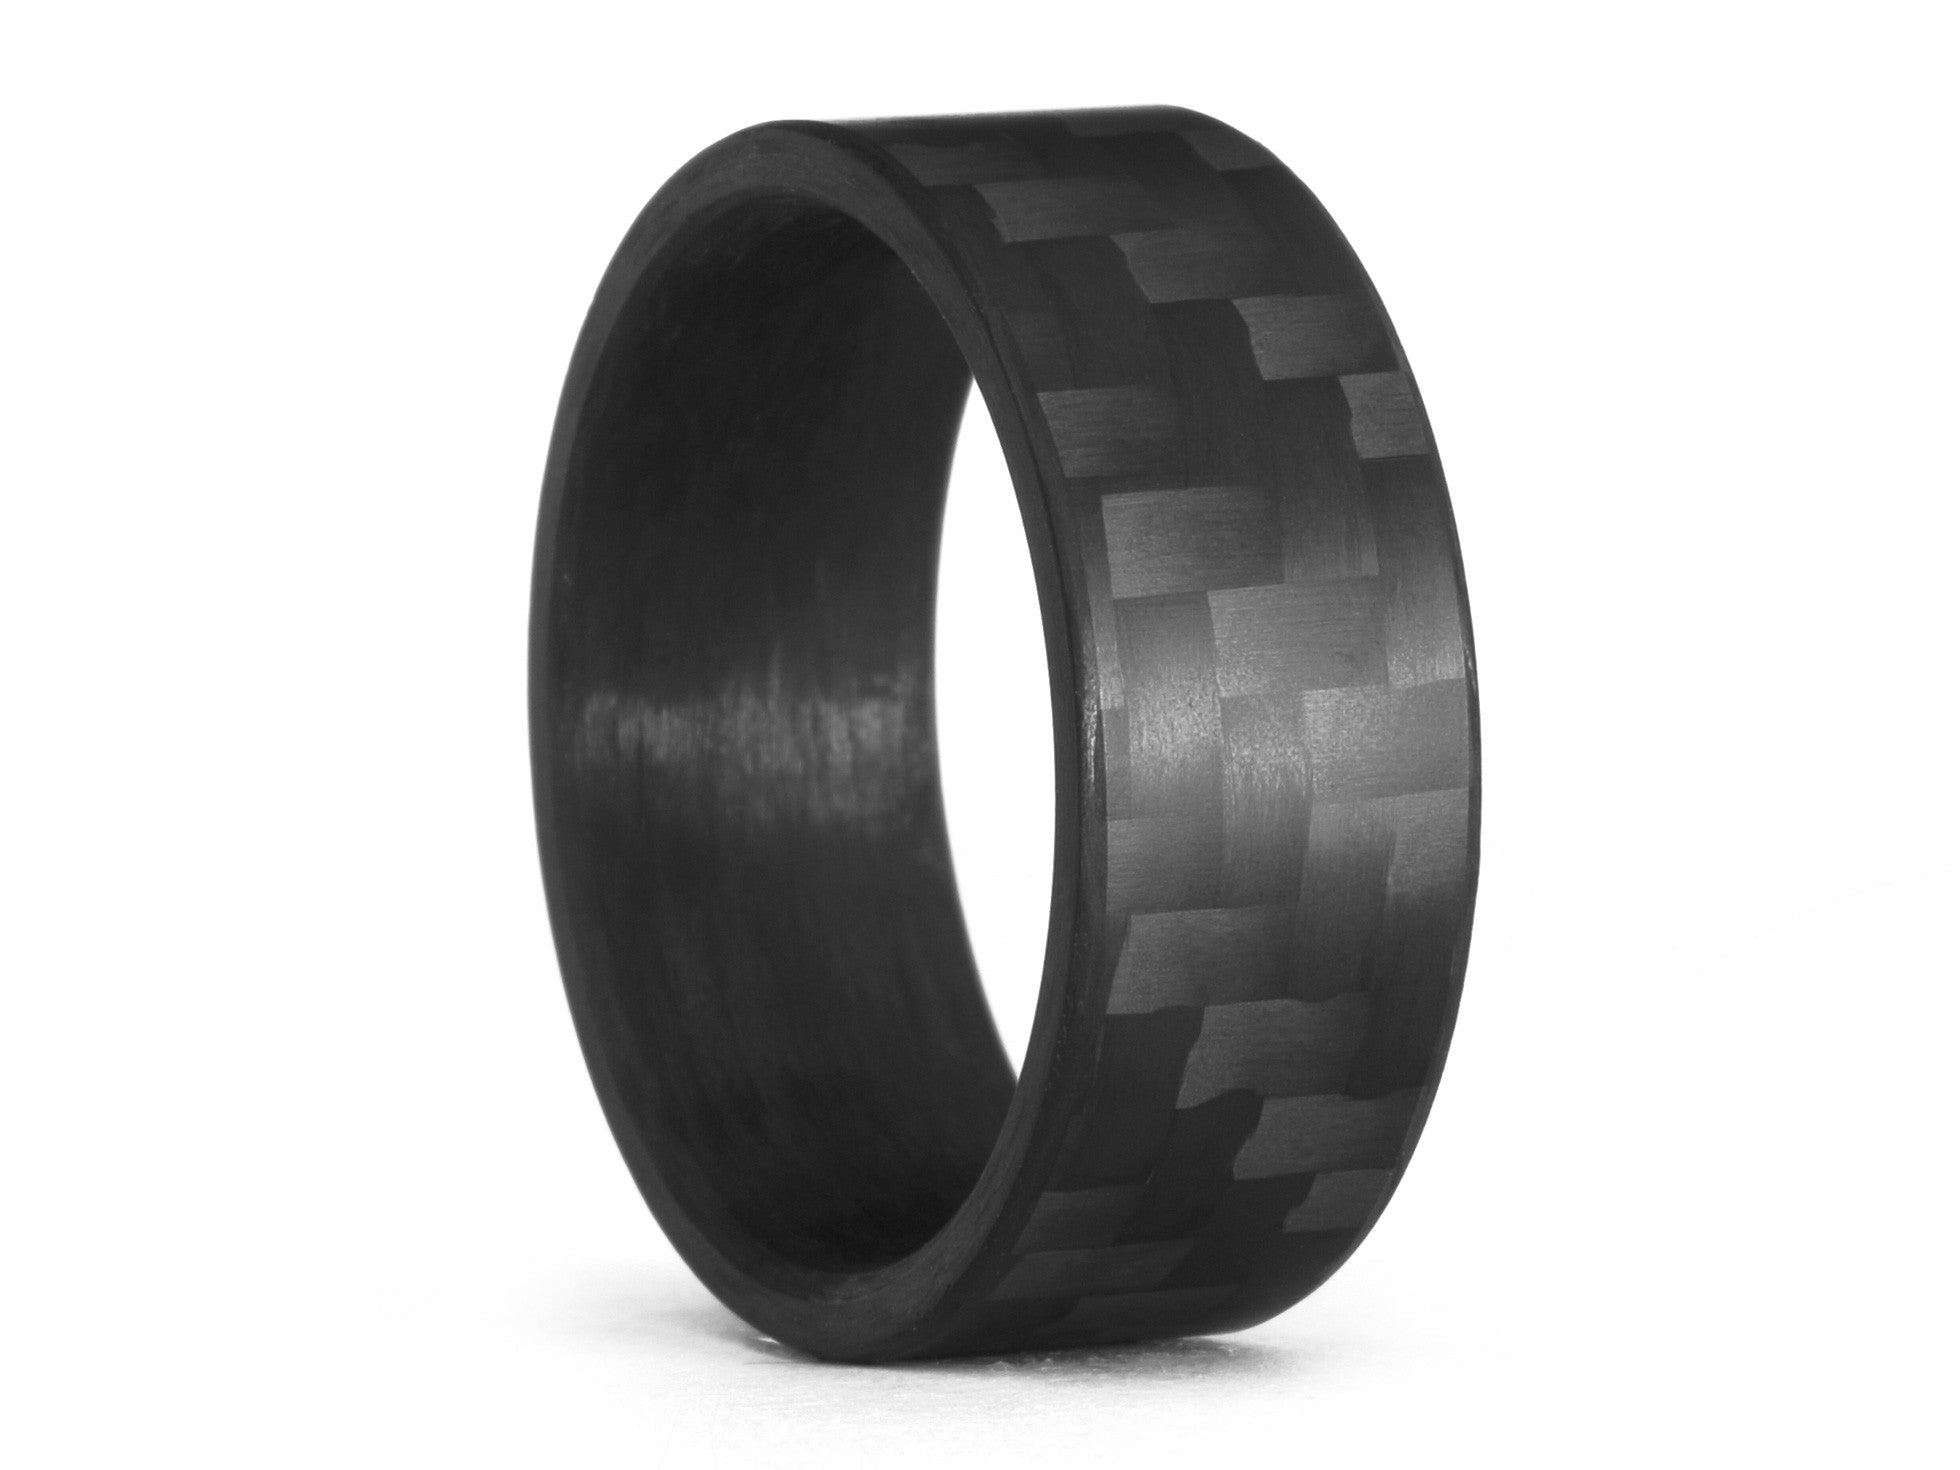 diamond rings zeke engagement folding wedding bands copy lance tungsten ring cool mens fiber ceramic knife black gold k knives carbide of sta carbon products